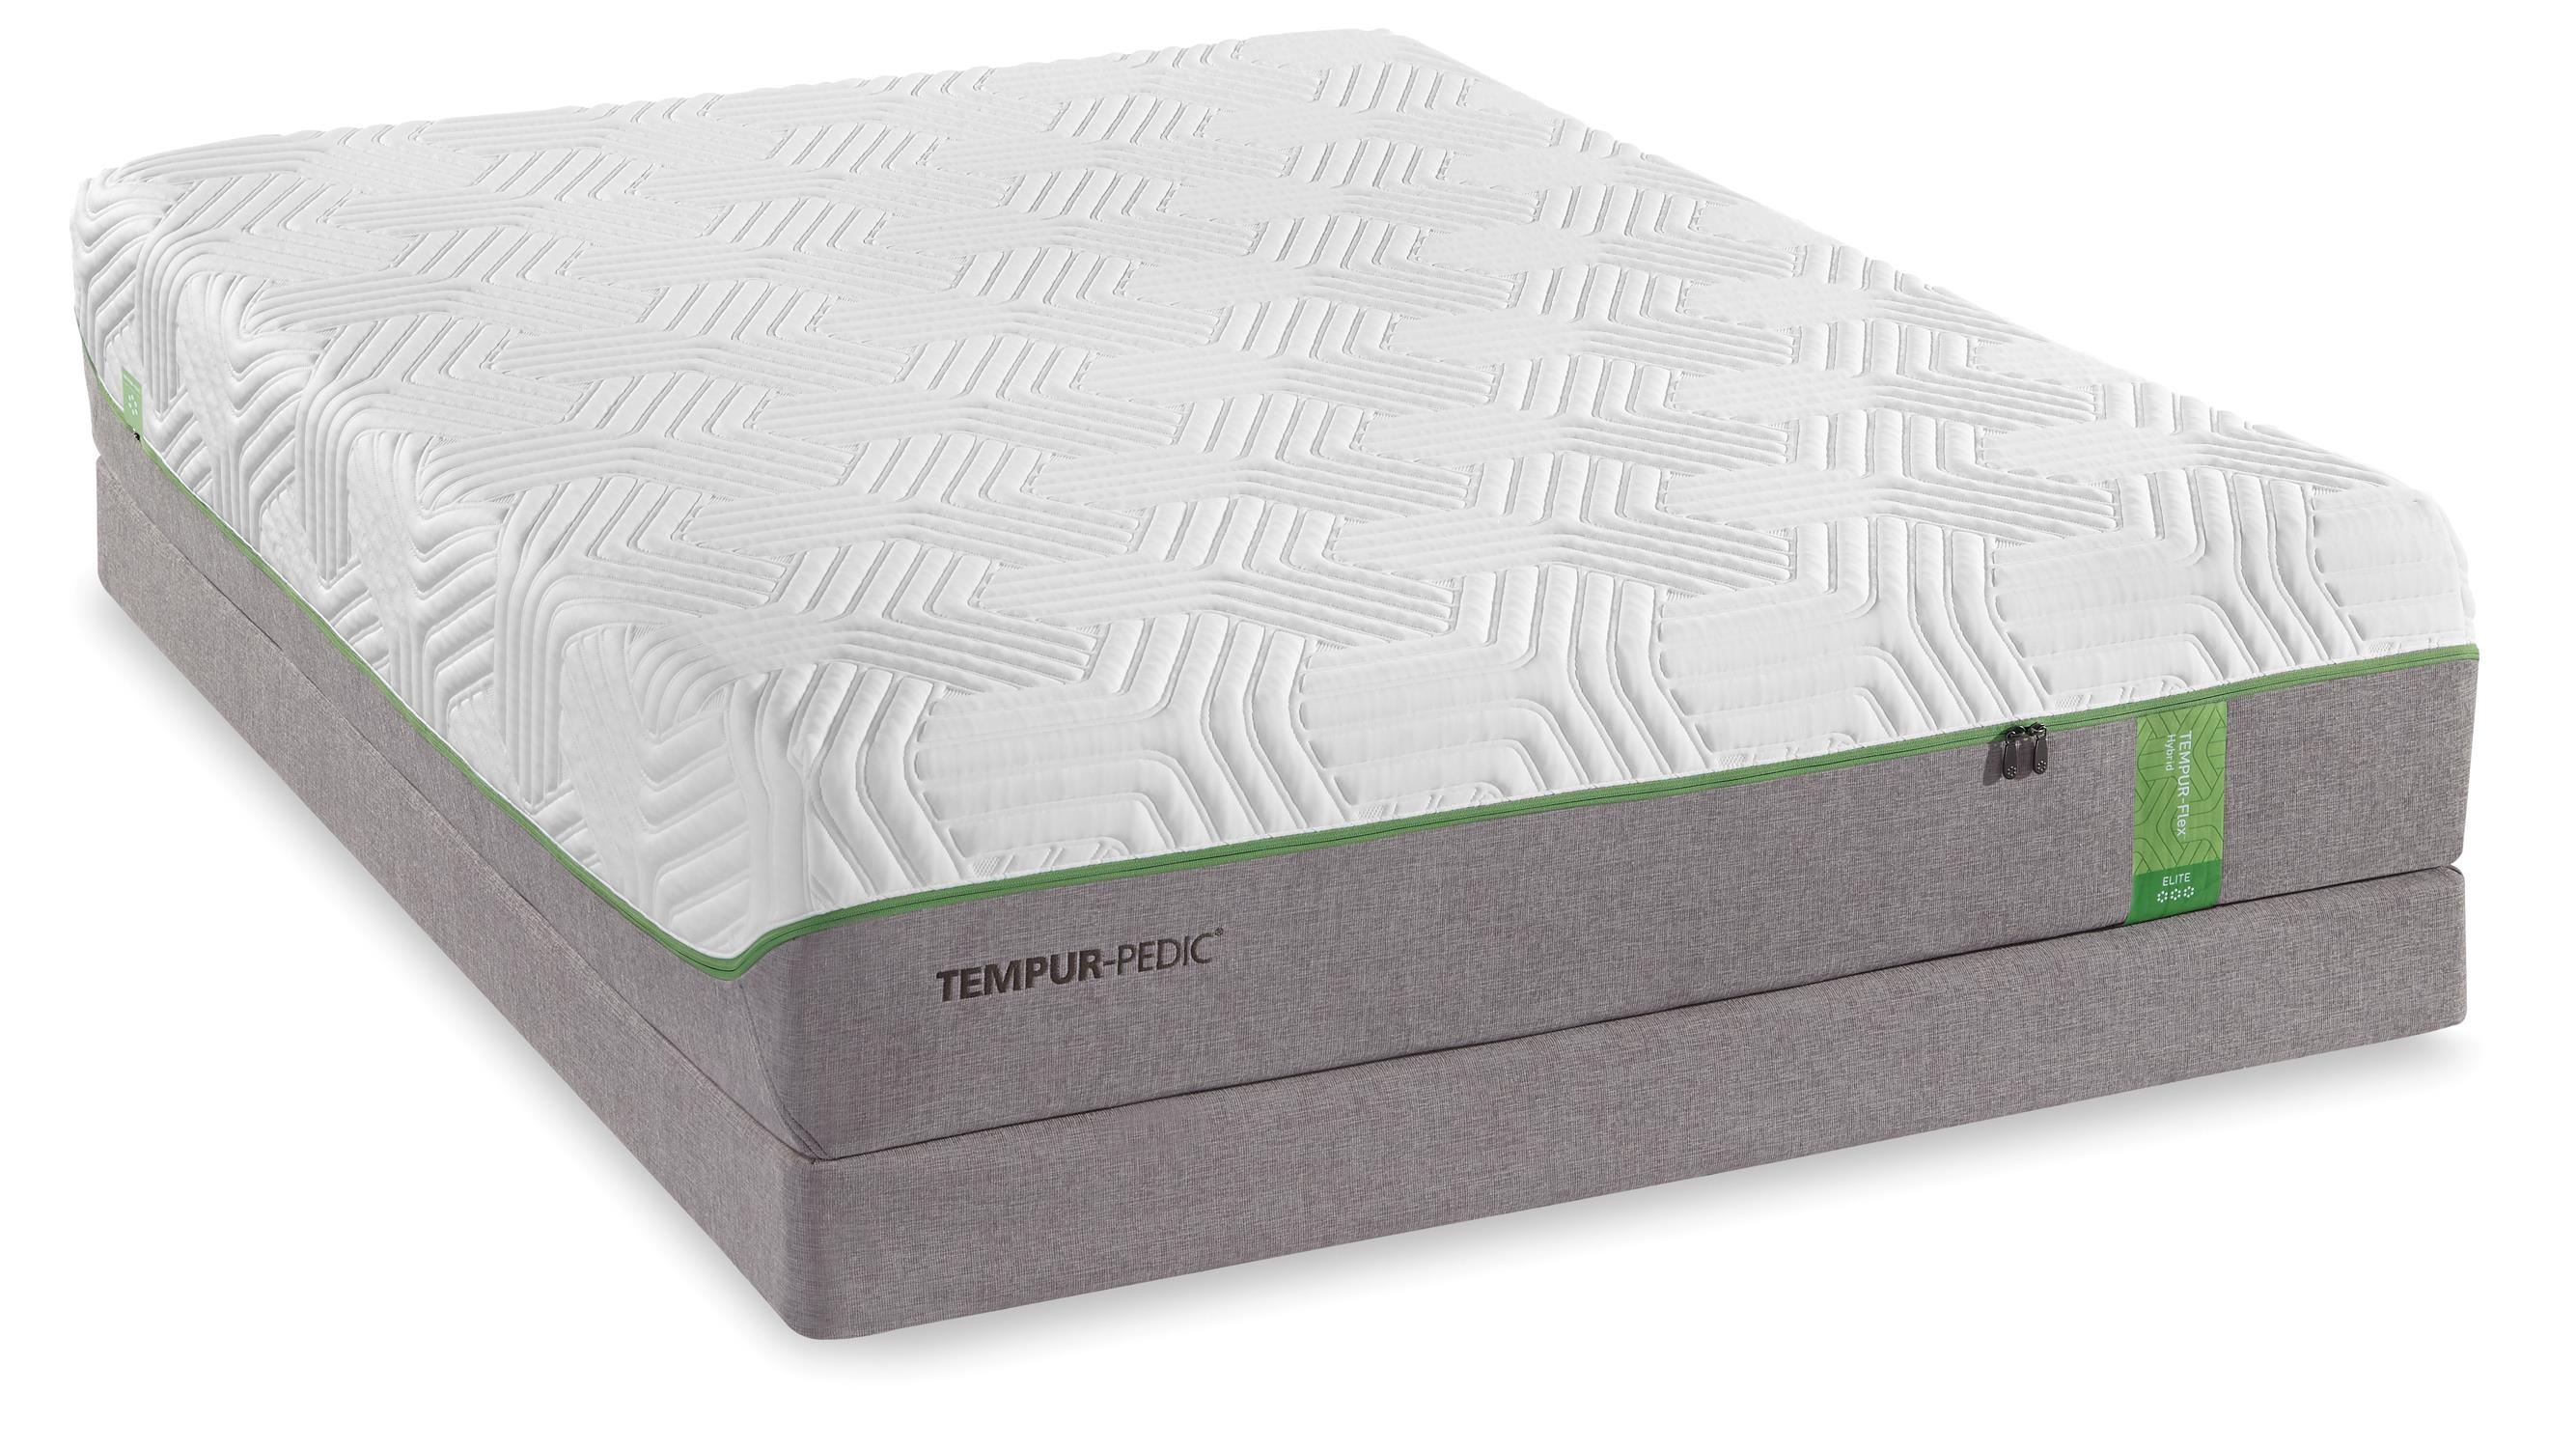 Tempur-Pedic® TEMPUR-Flex Elite Twin XL Medium Soft Plush Mattress Set - Item Number: 10117120+20510120